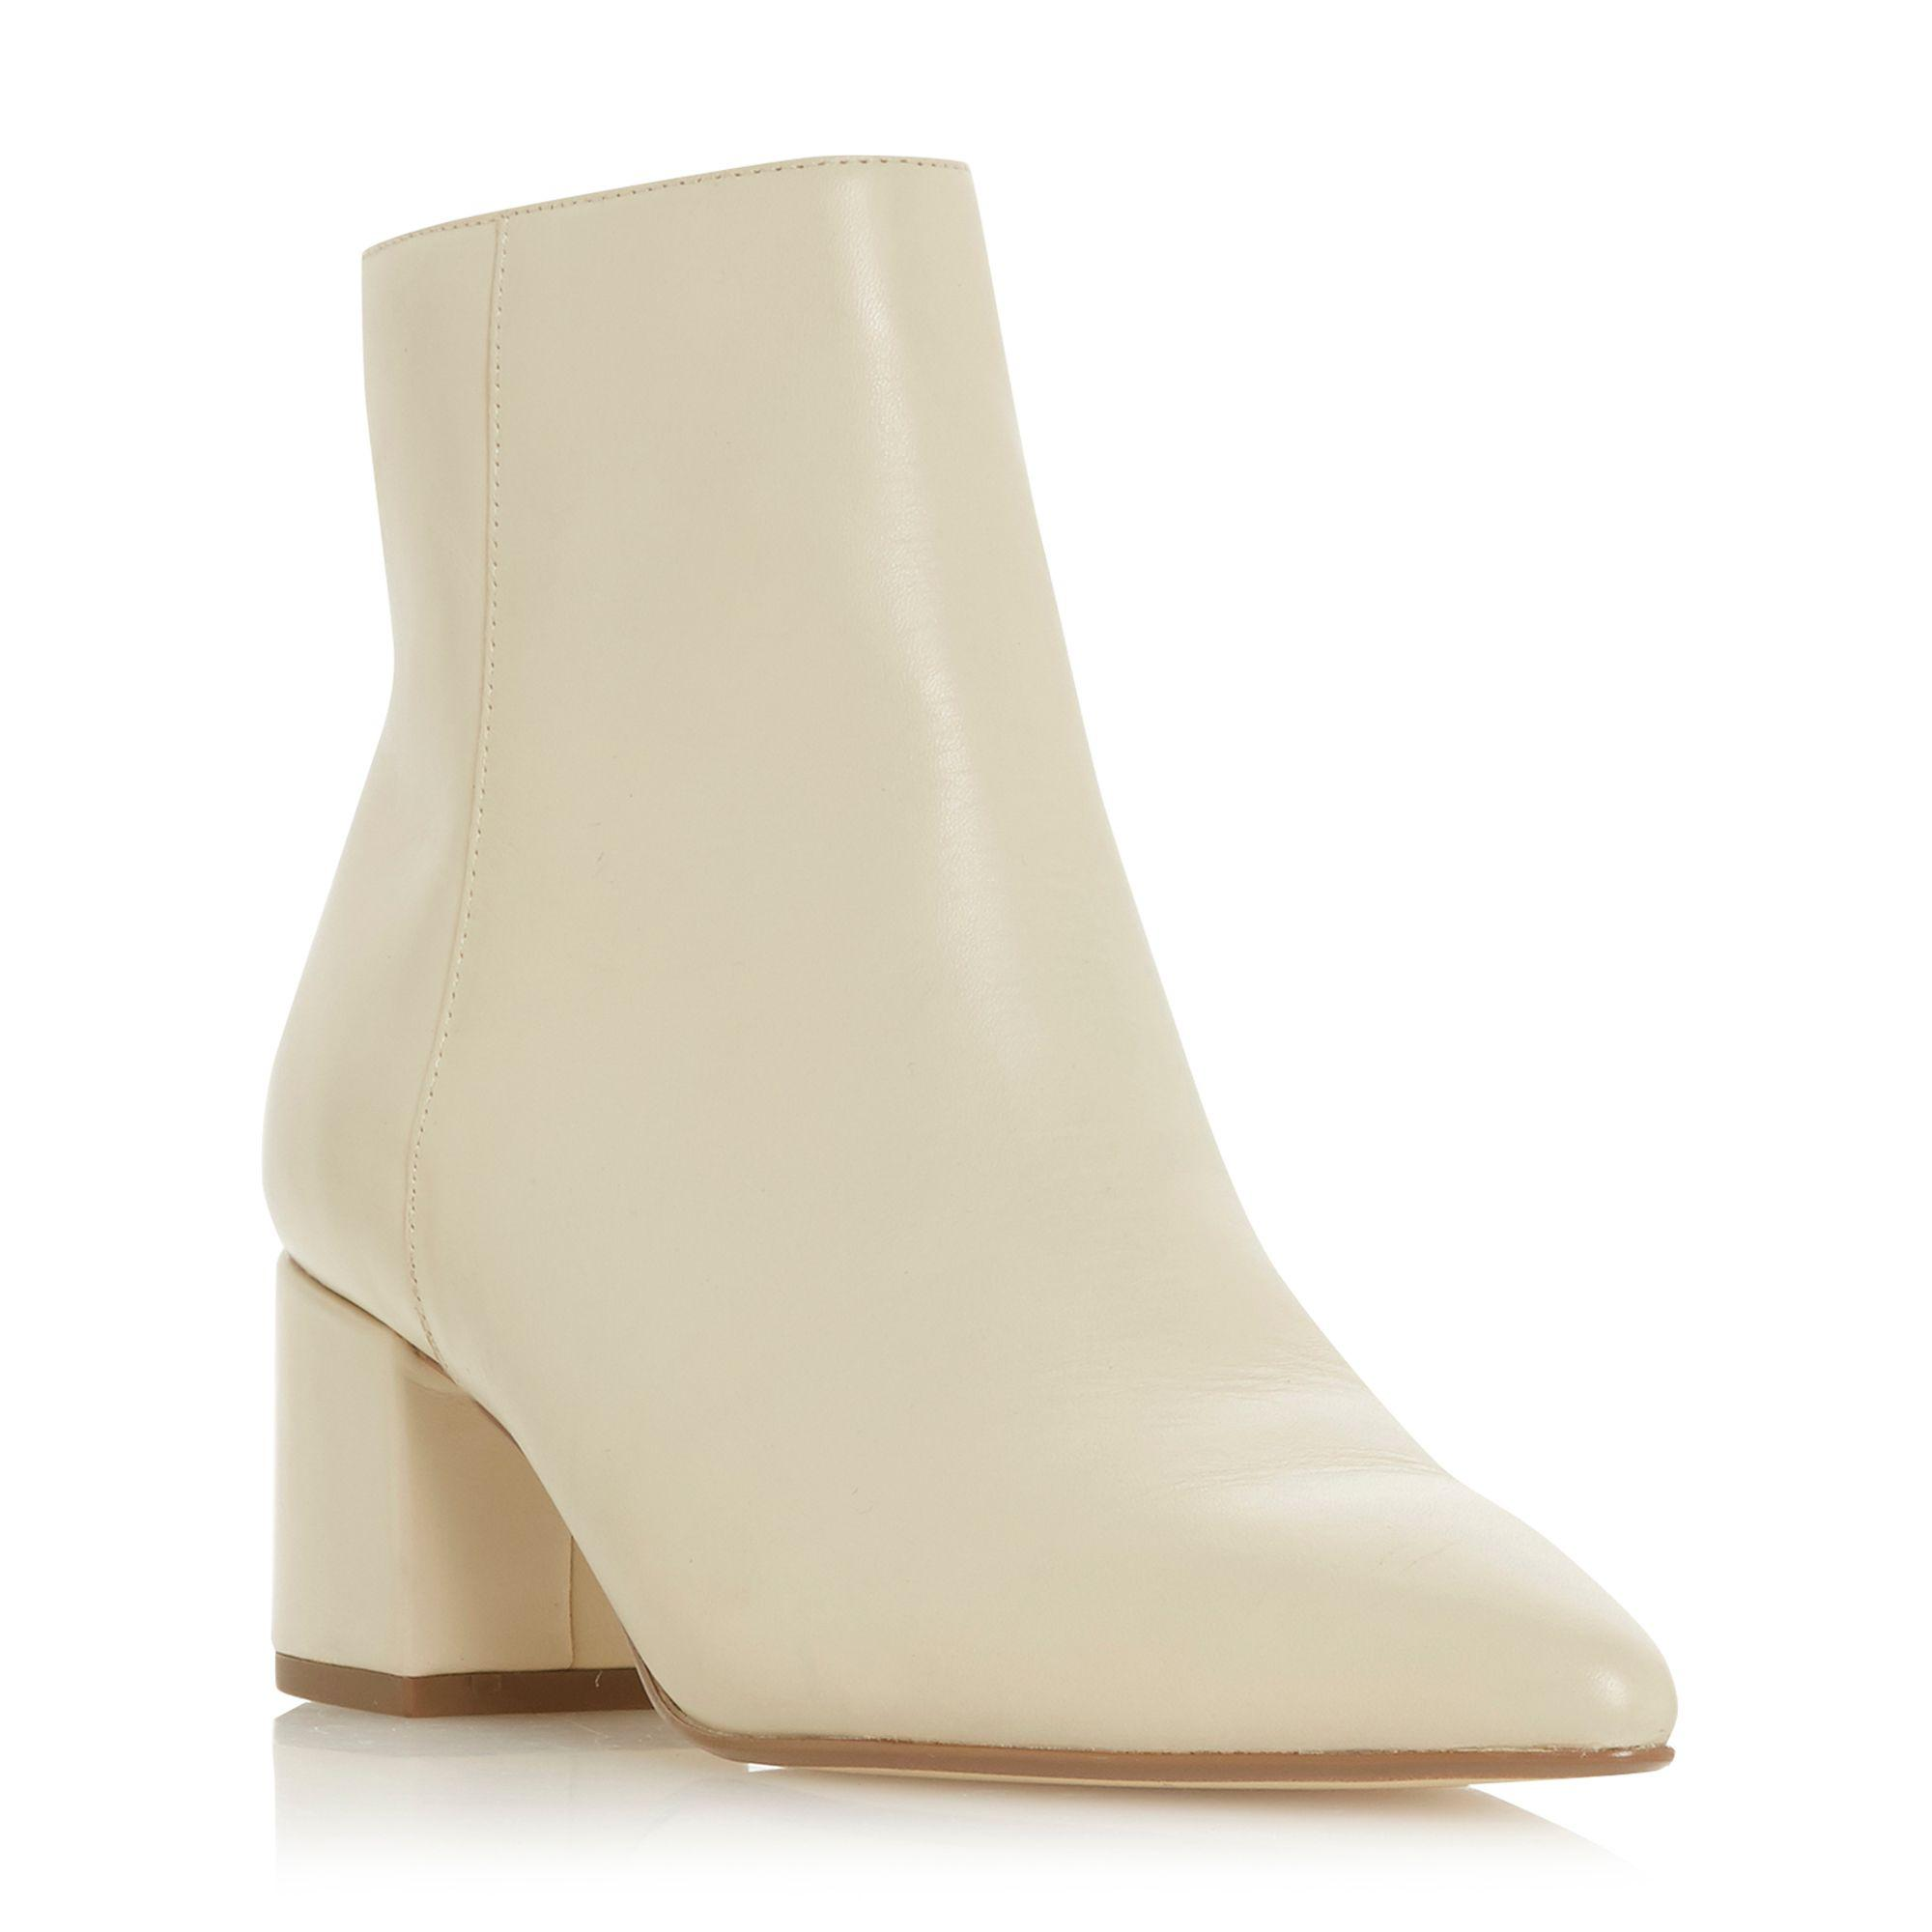 b27956caee632 Dune Cream Leather 'omari' Mid Block Heel Ankle Boots in Natural - Lyst